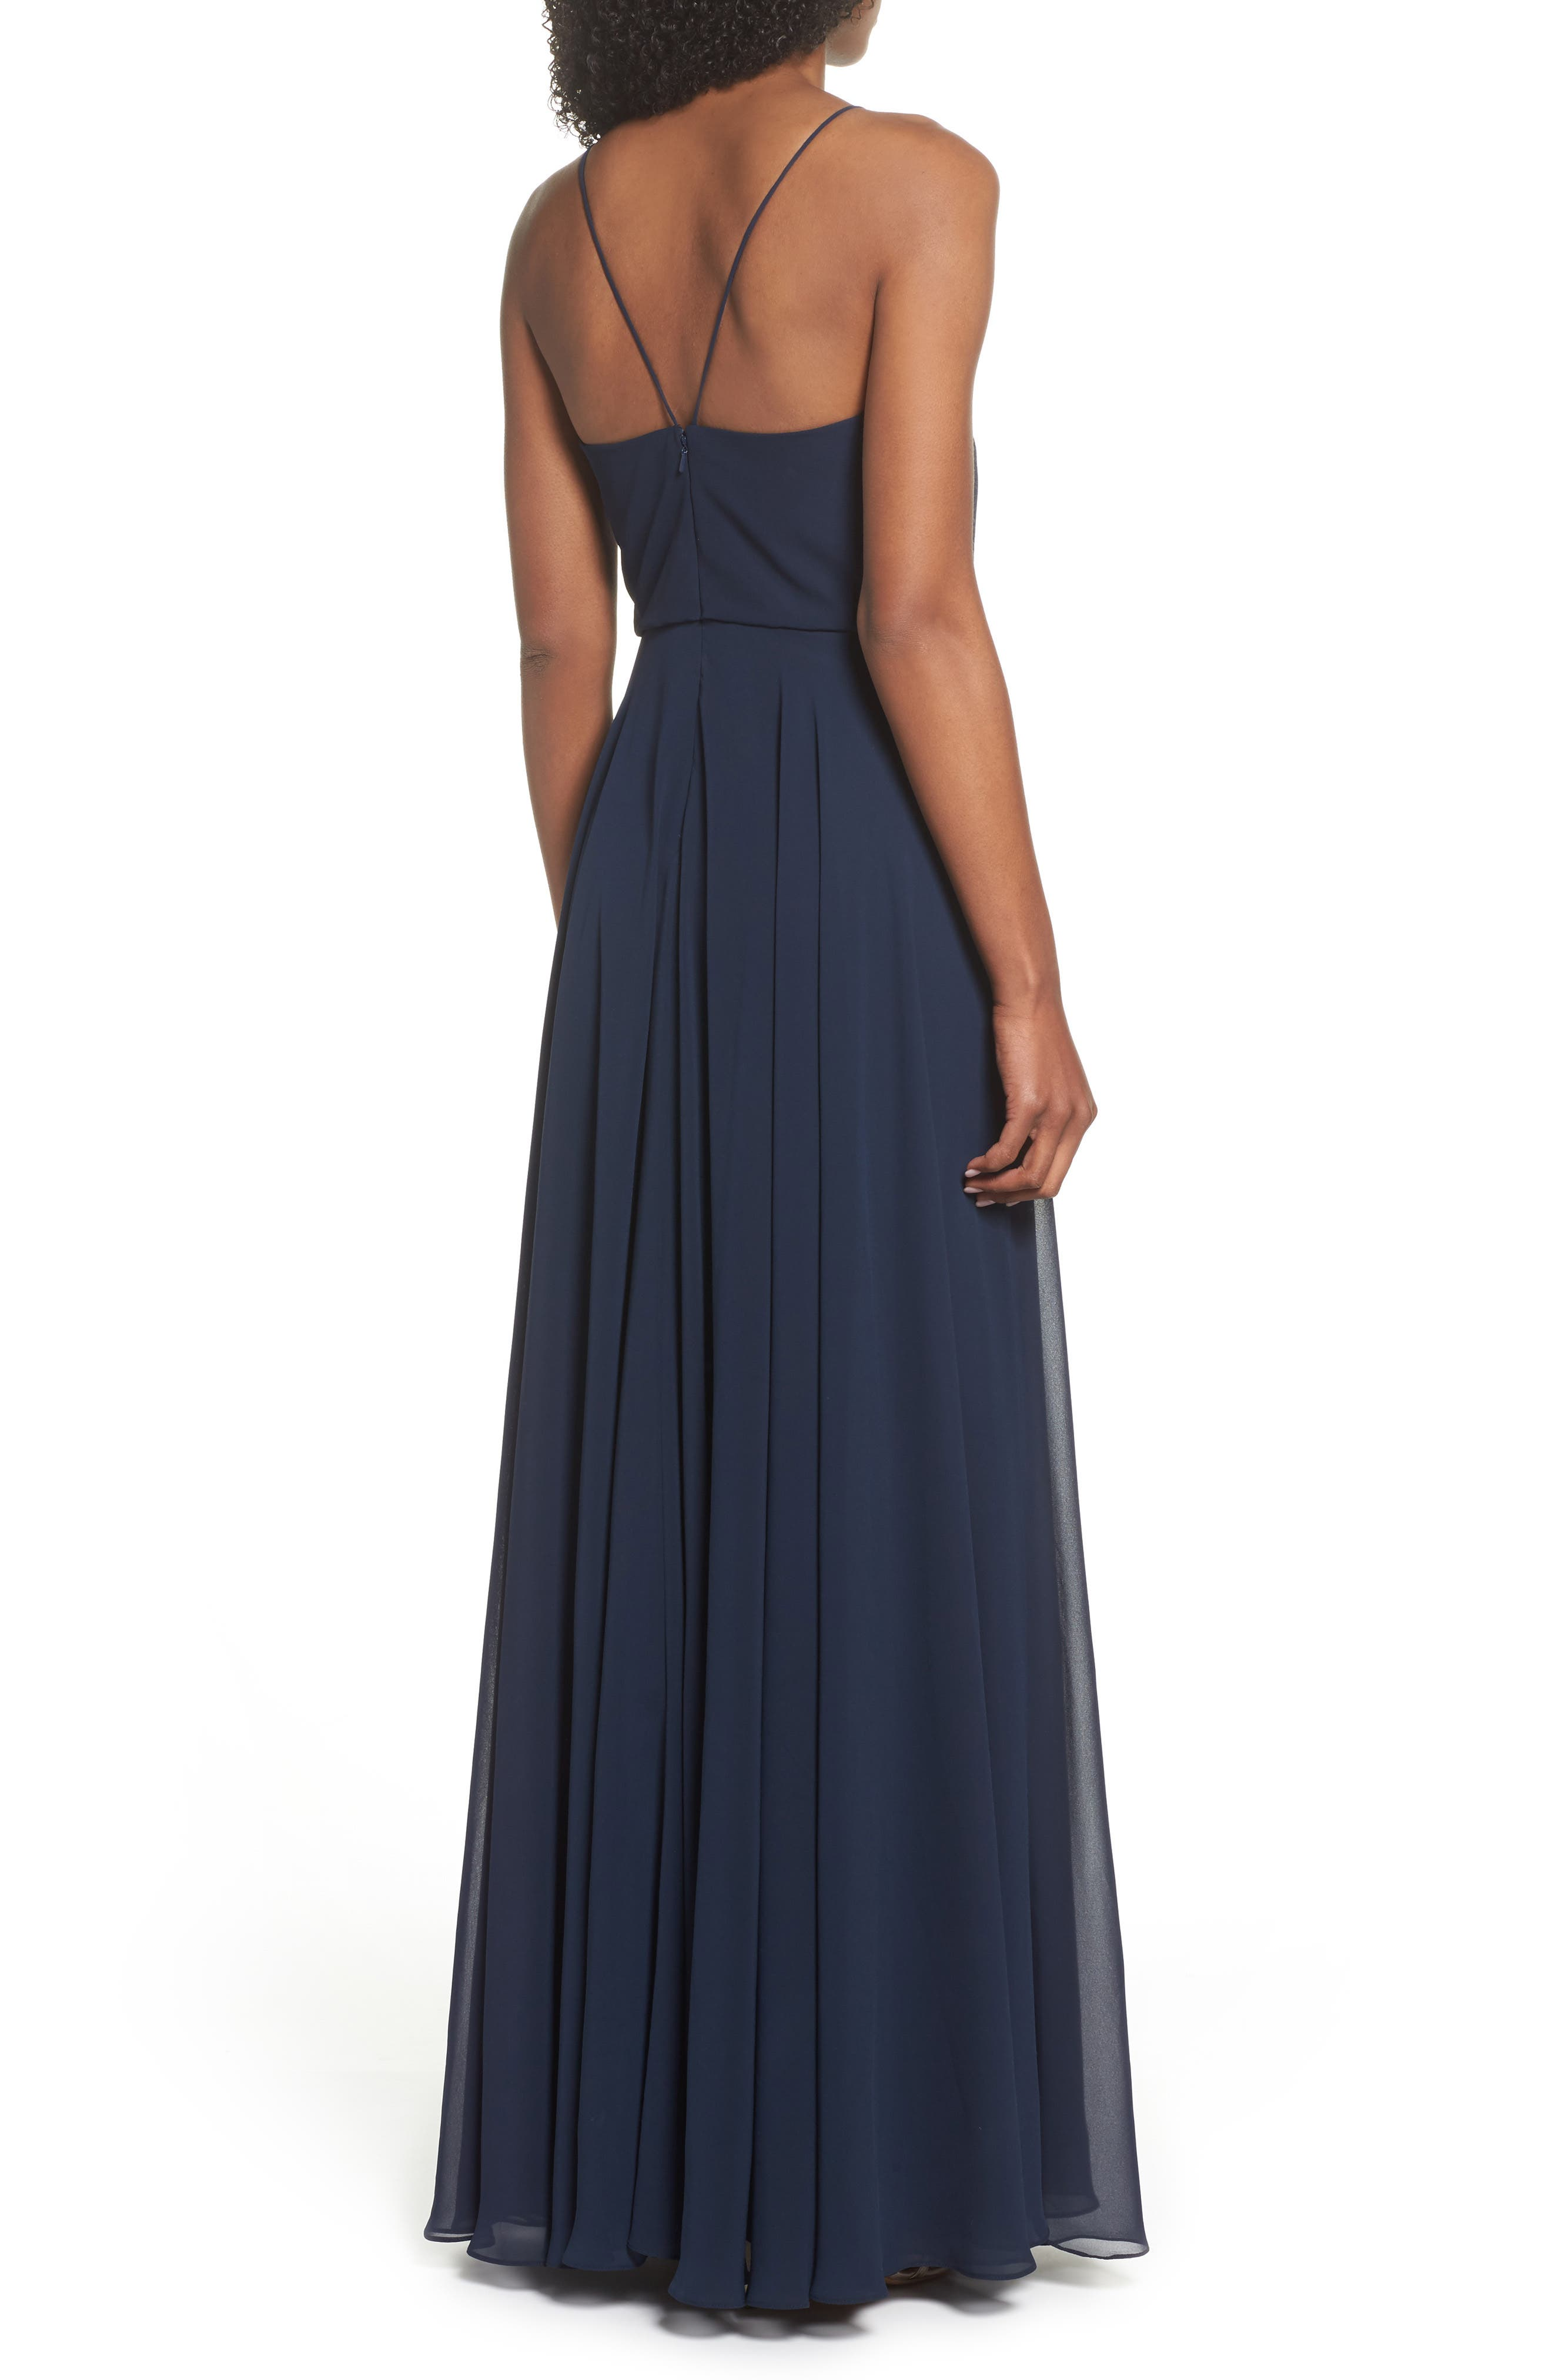 Inesse Chiffon V-Neck Spaghetti Strap Gown,                             Alternate thumbnail 2, color,                             NAVY